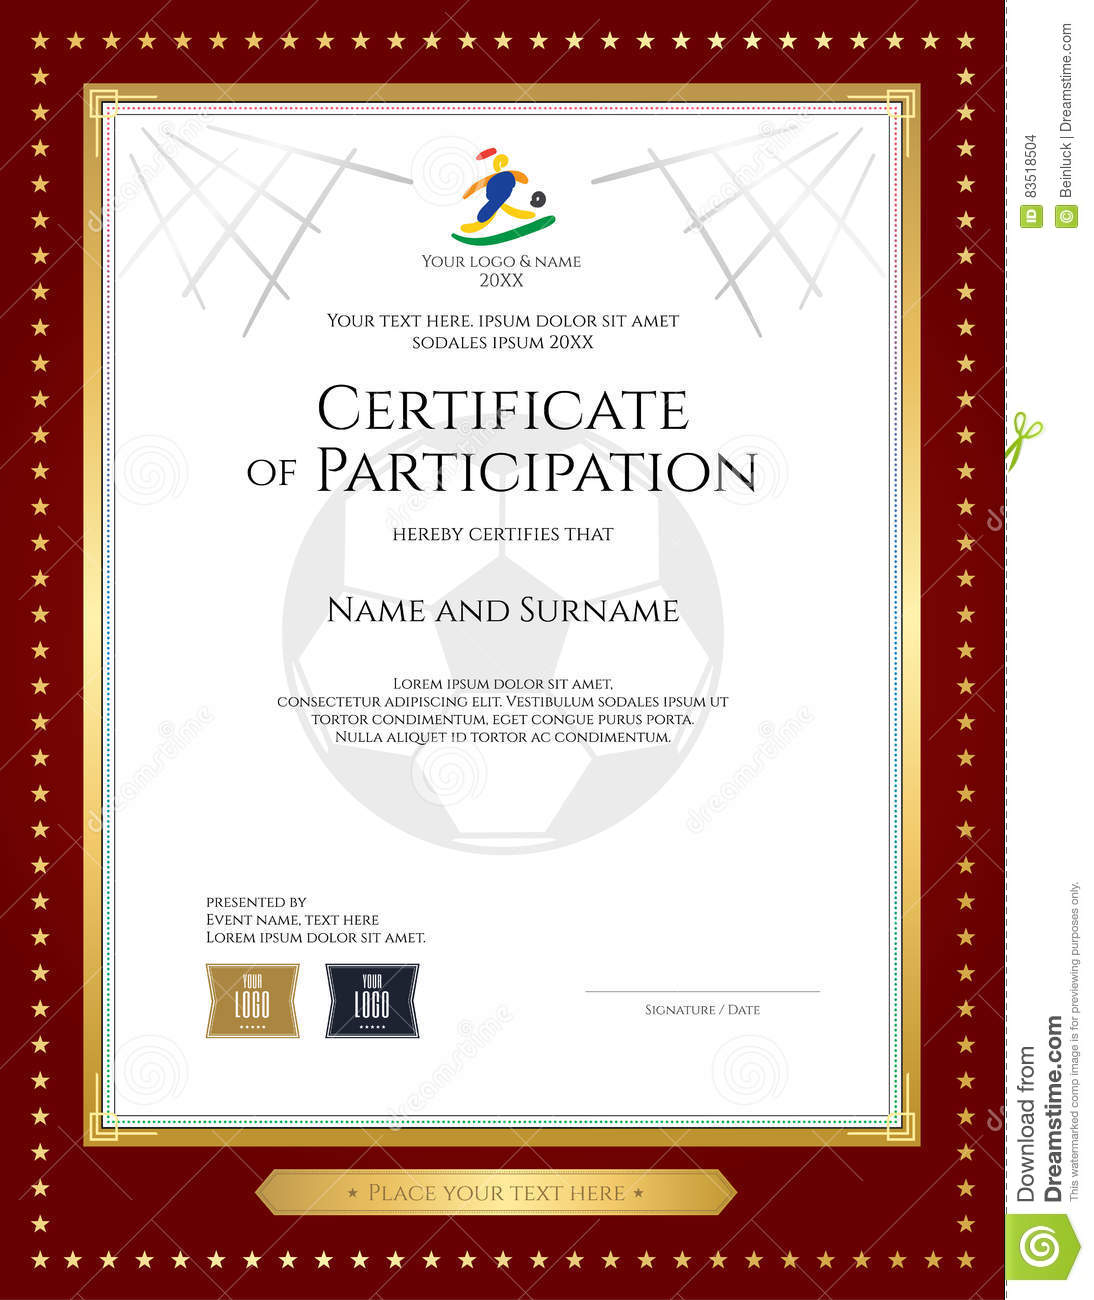 Sport Theme Certificate Of Participation Template Vector – Certificate of Participation Template